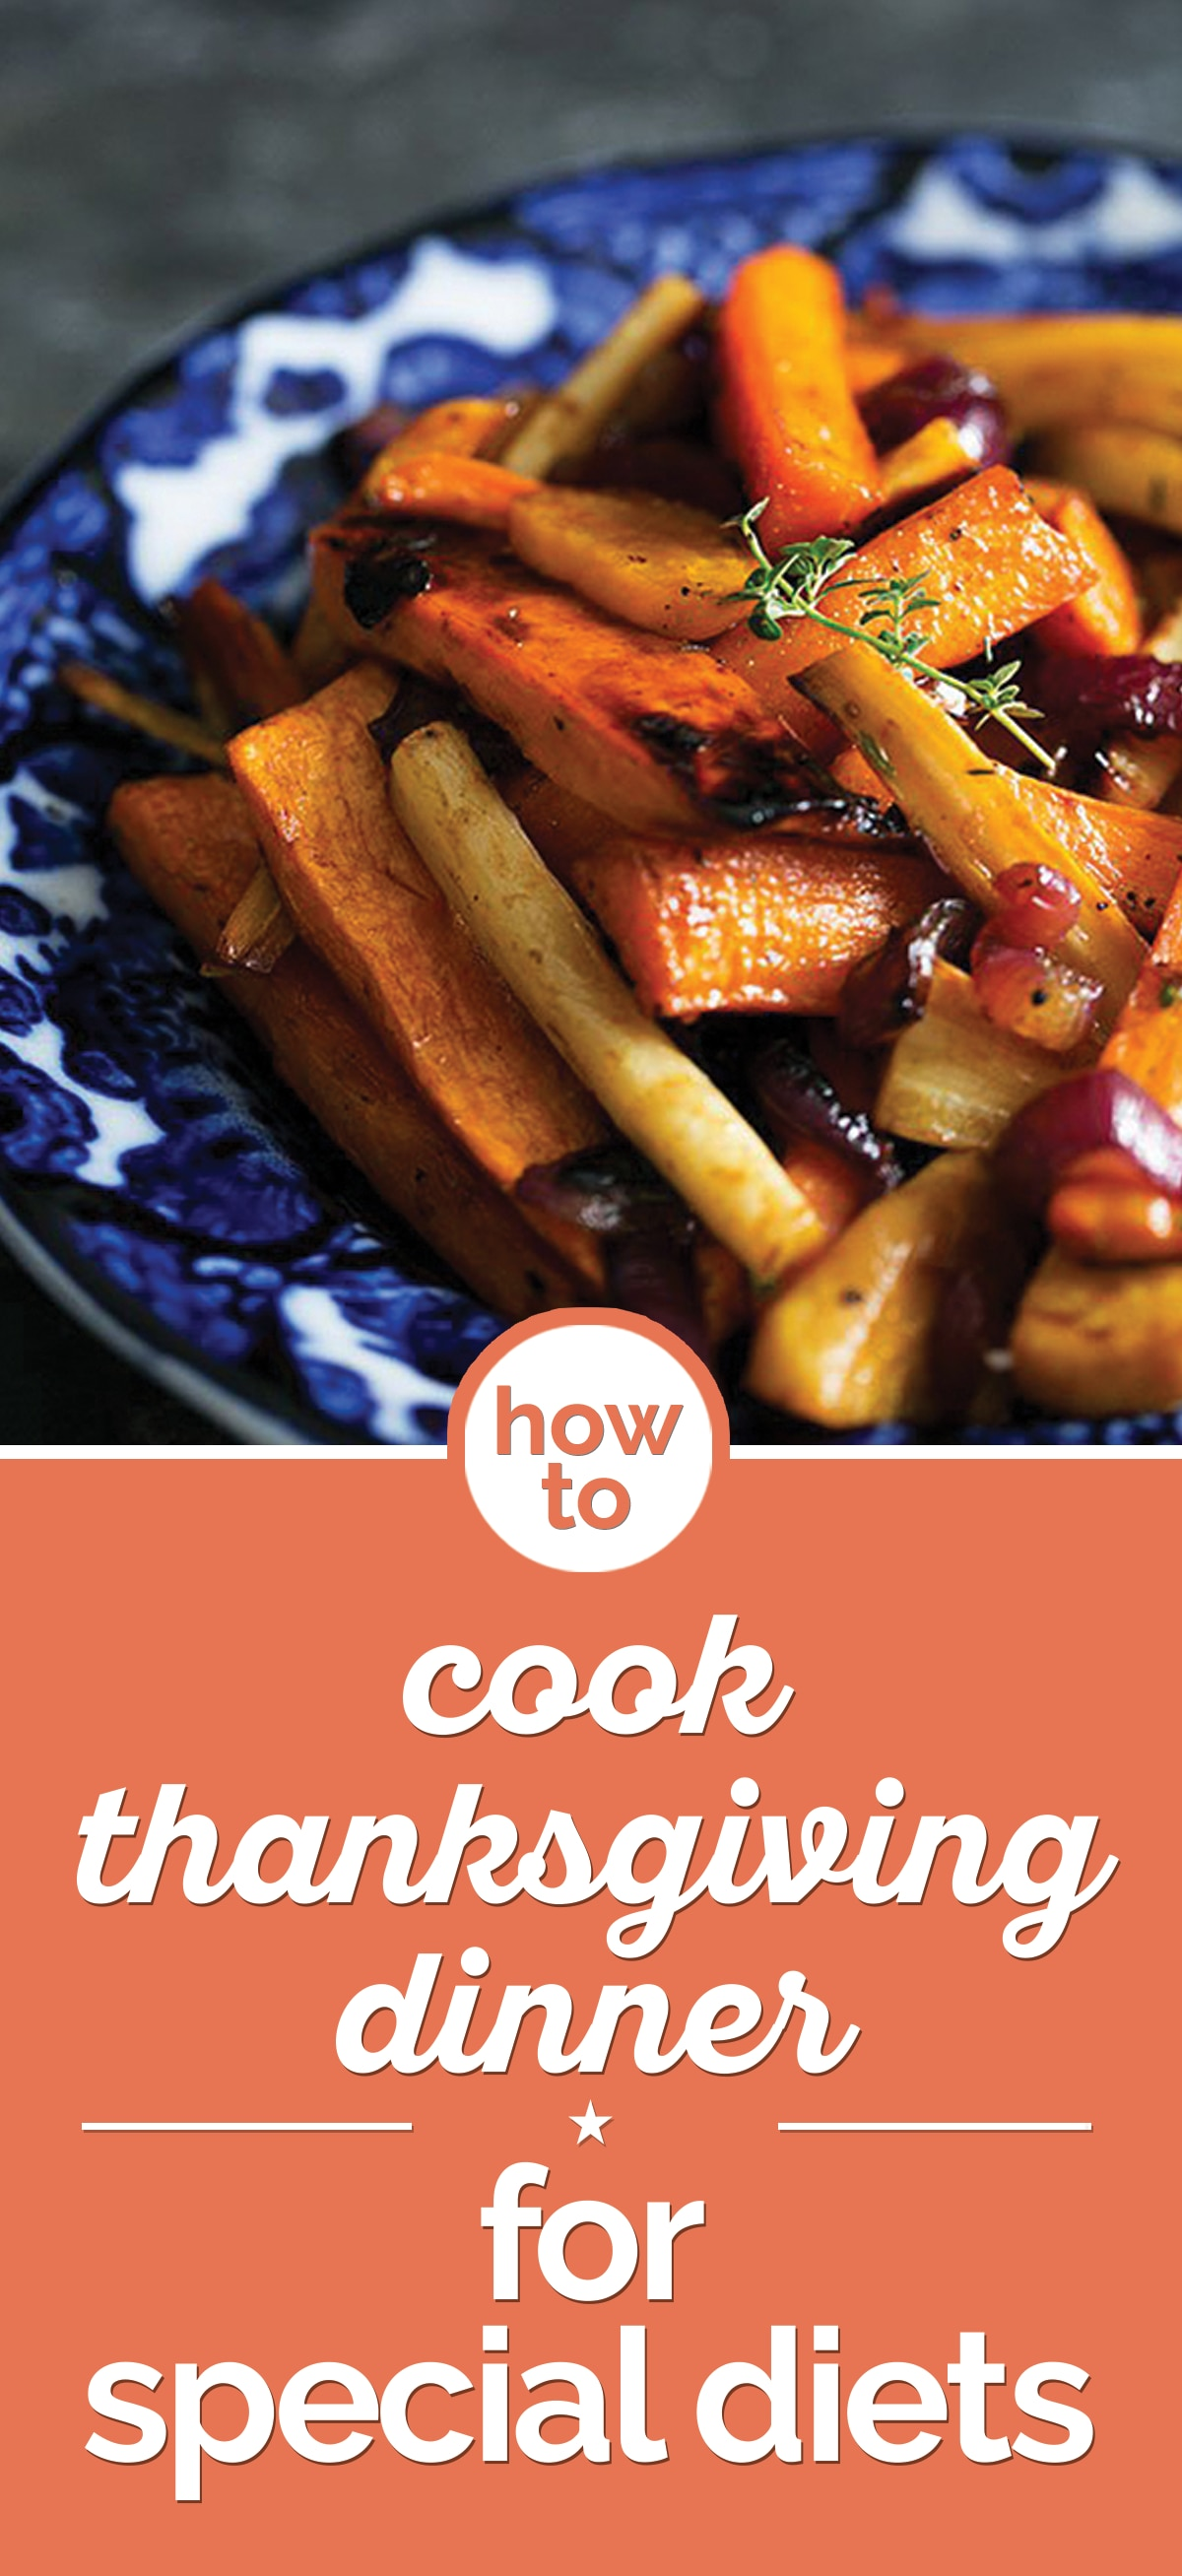 How to Cook Thanksgiving Dinner for Special Diets | thegoodstuff